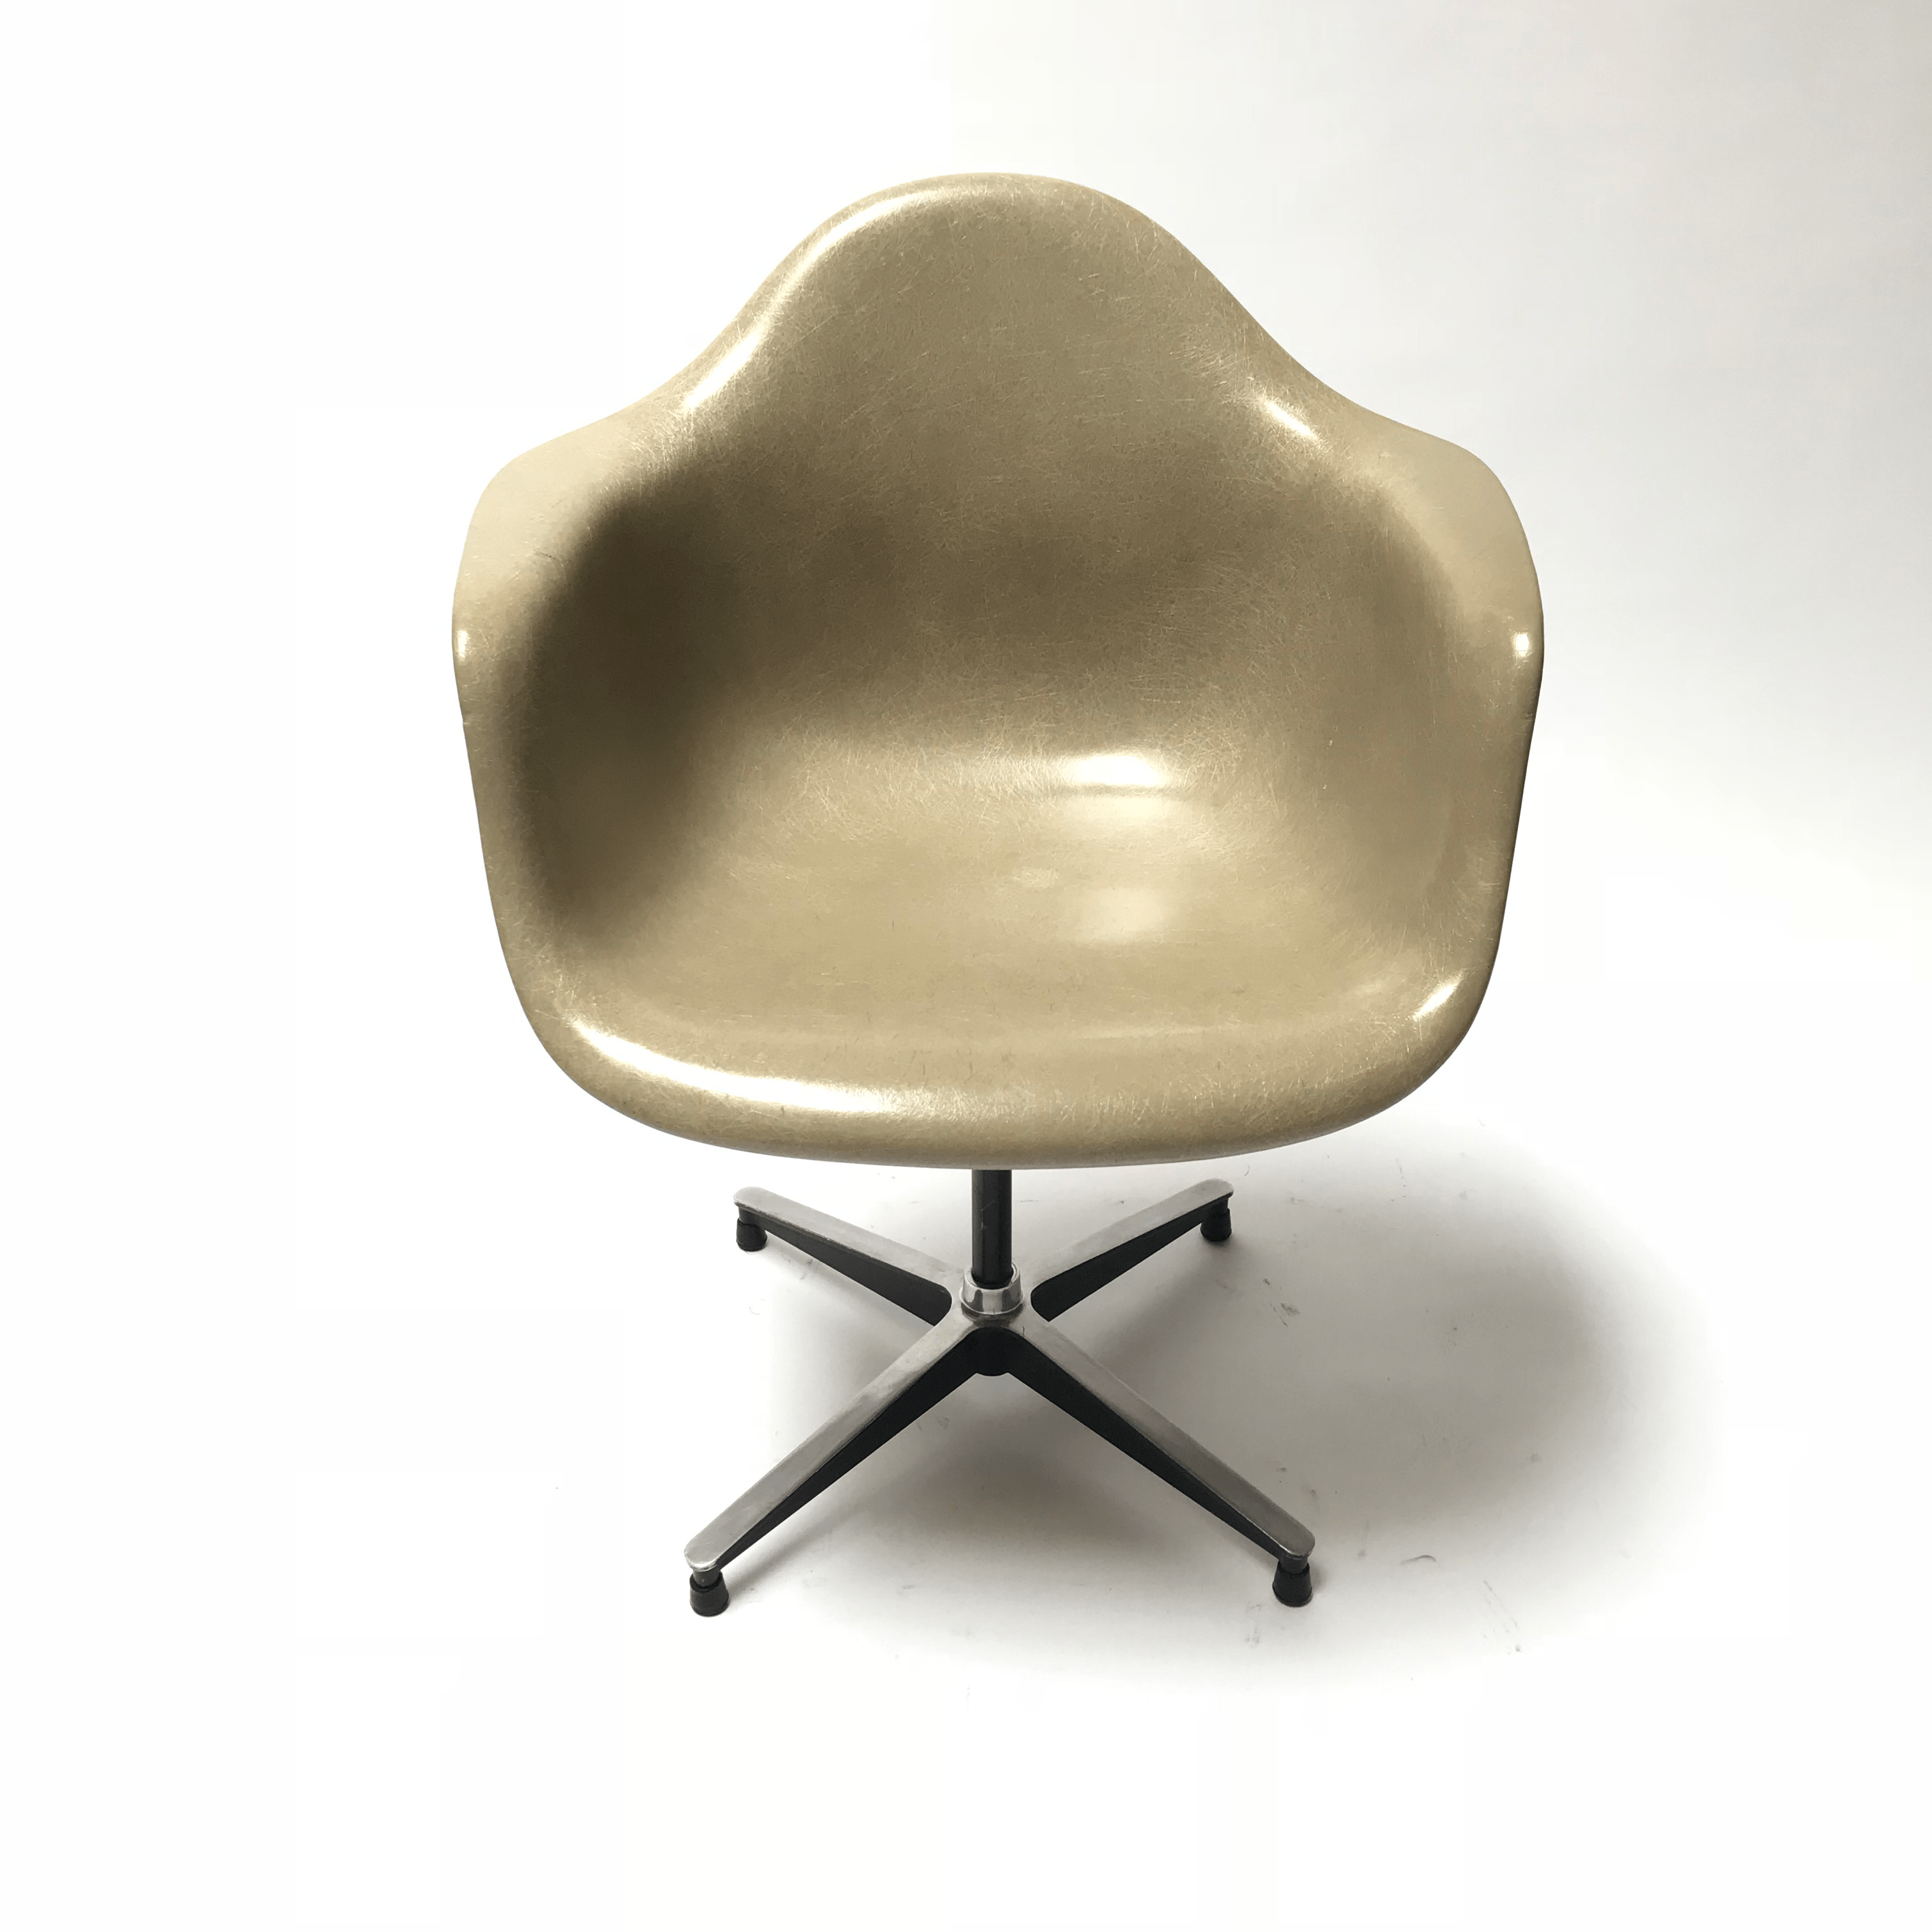 eames arm chair high top table 4 chairs vintage armchair for herman miller chairish fiberglass rare early production swivel base